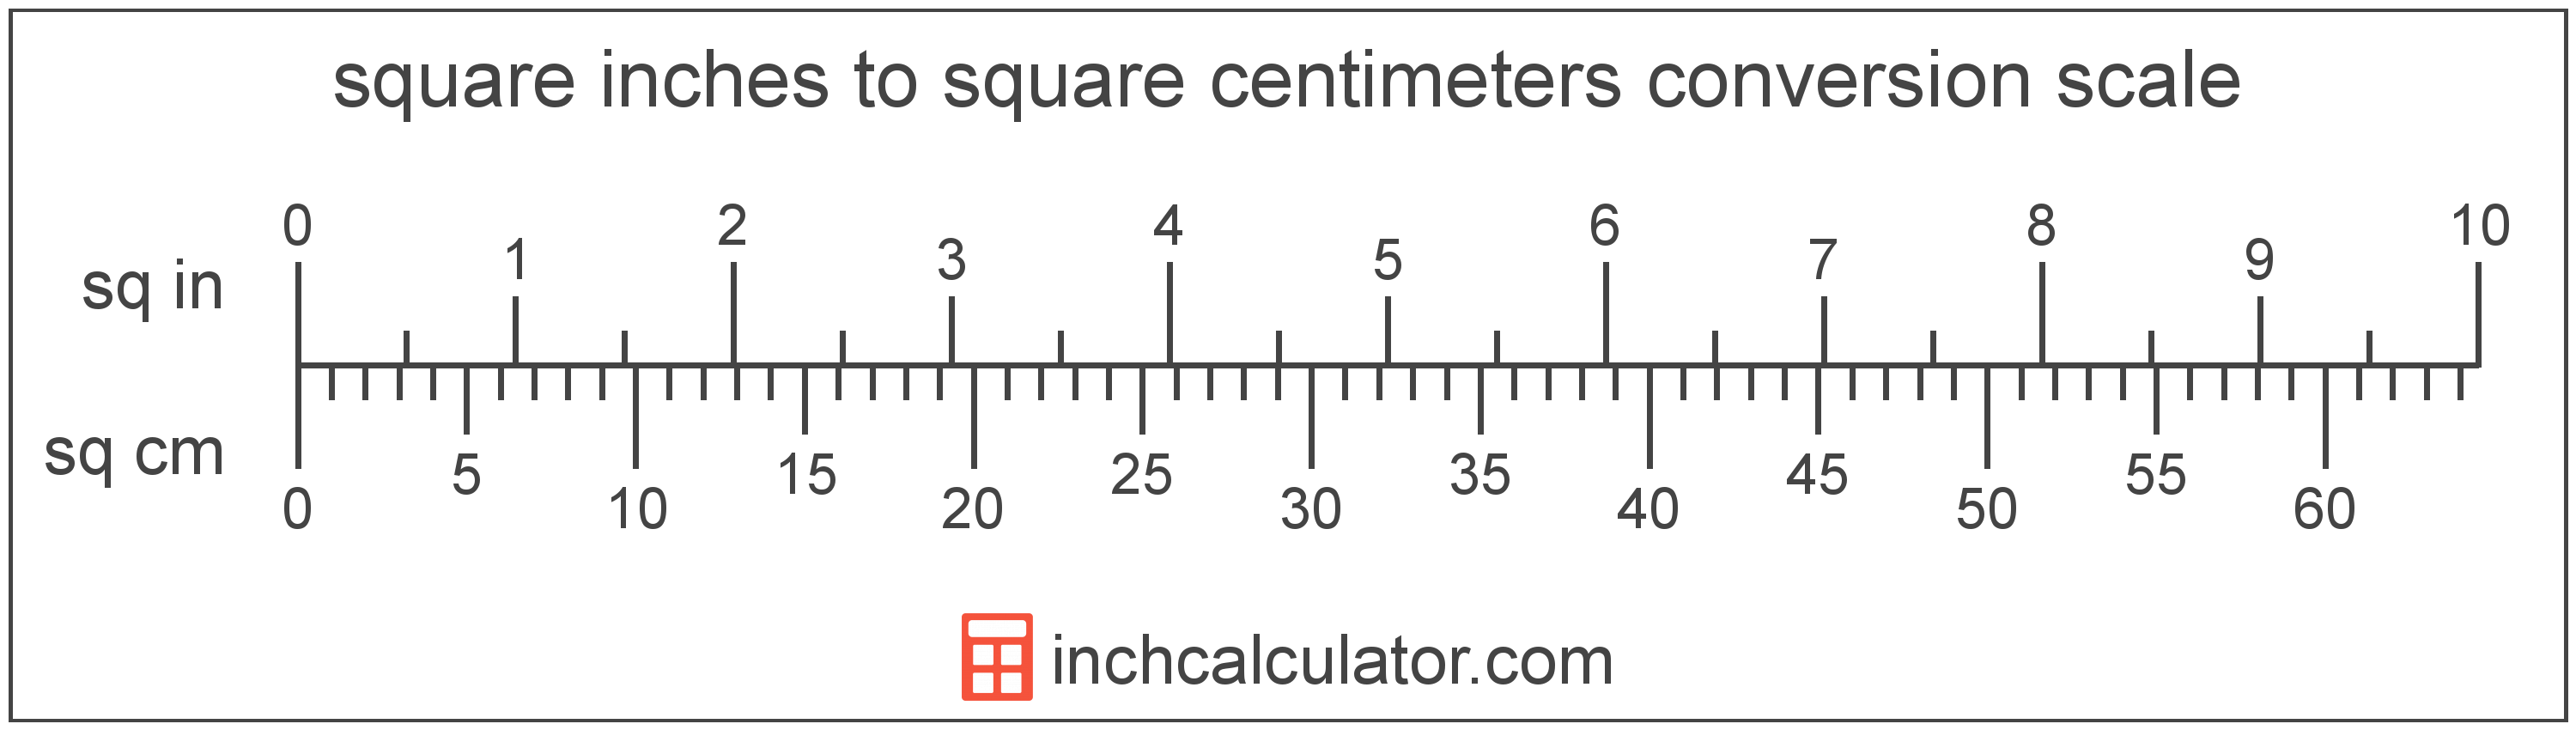 conversion scale showing square inches and equivalent square centimeters area values